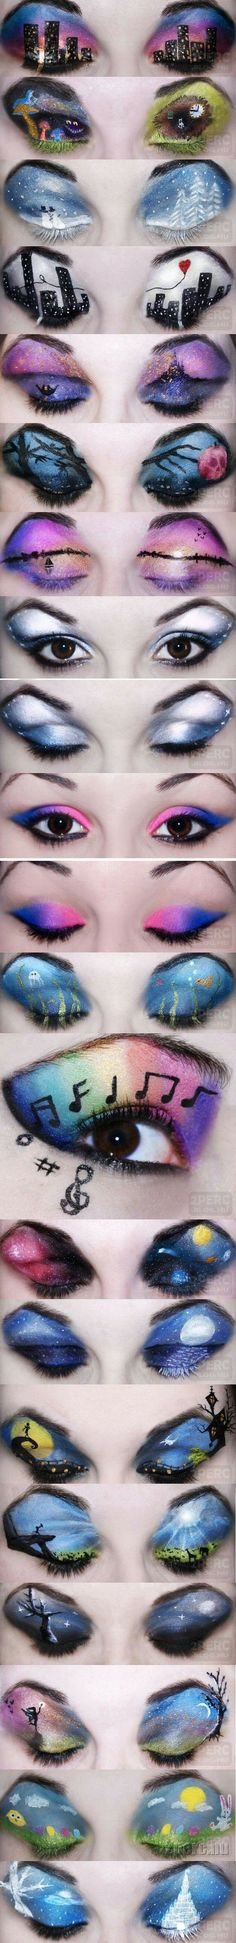 This has to be the coolest eye makeup I have seen in a LONG time! #beauty #WinWayneGossTheCollection